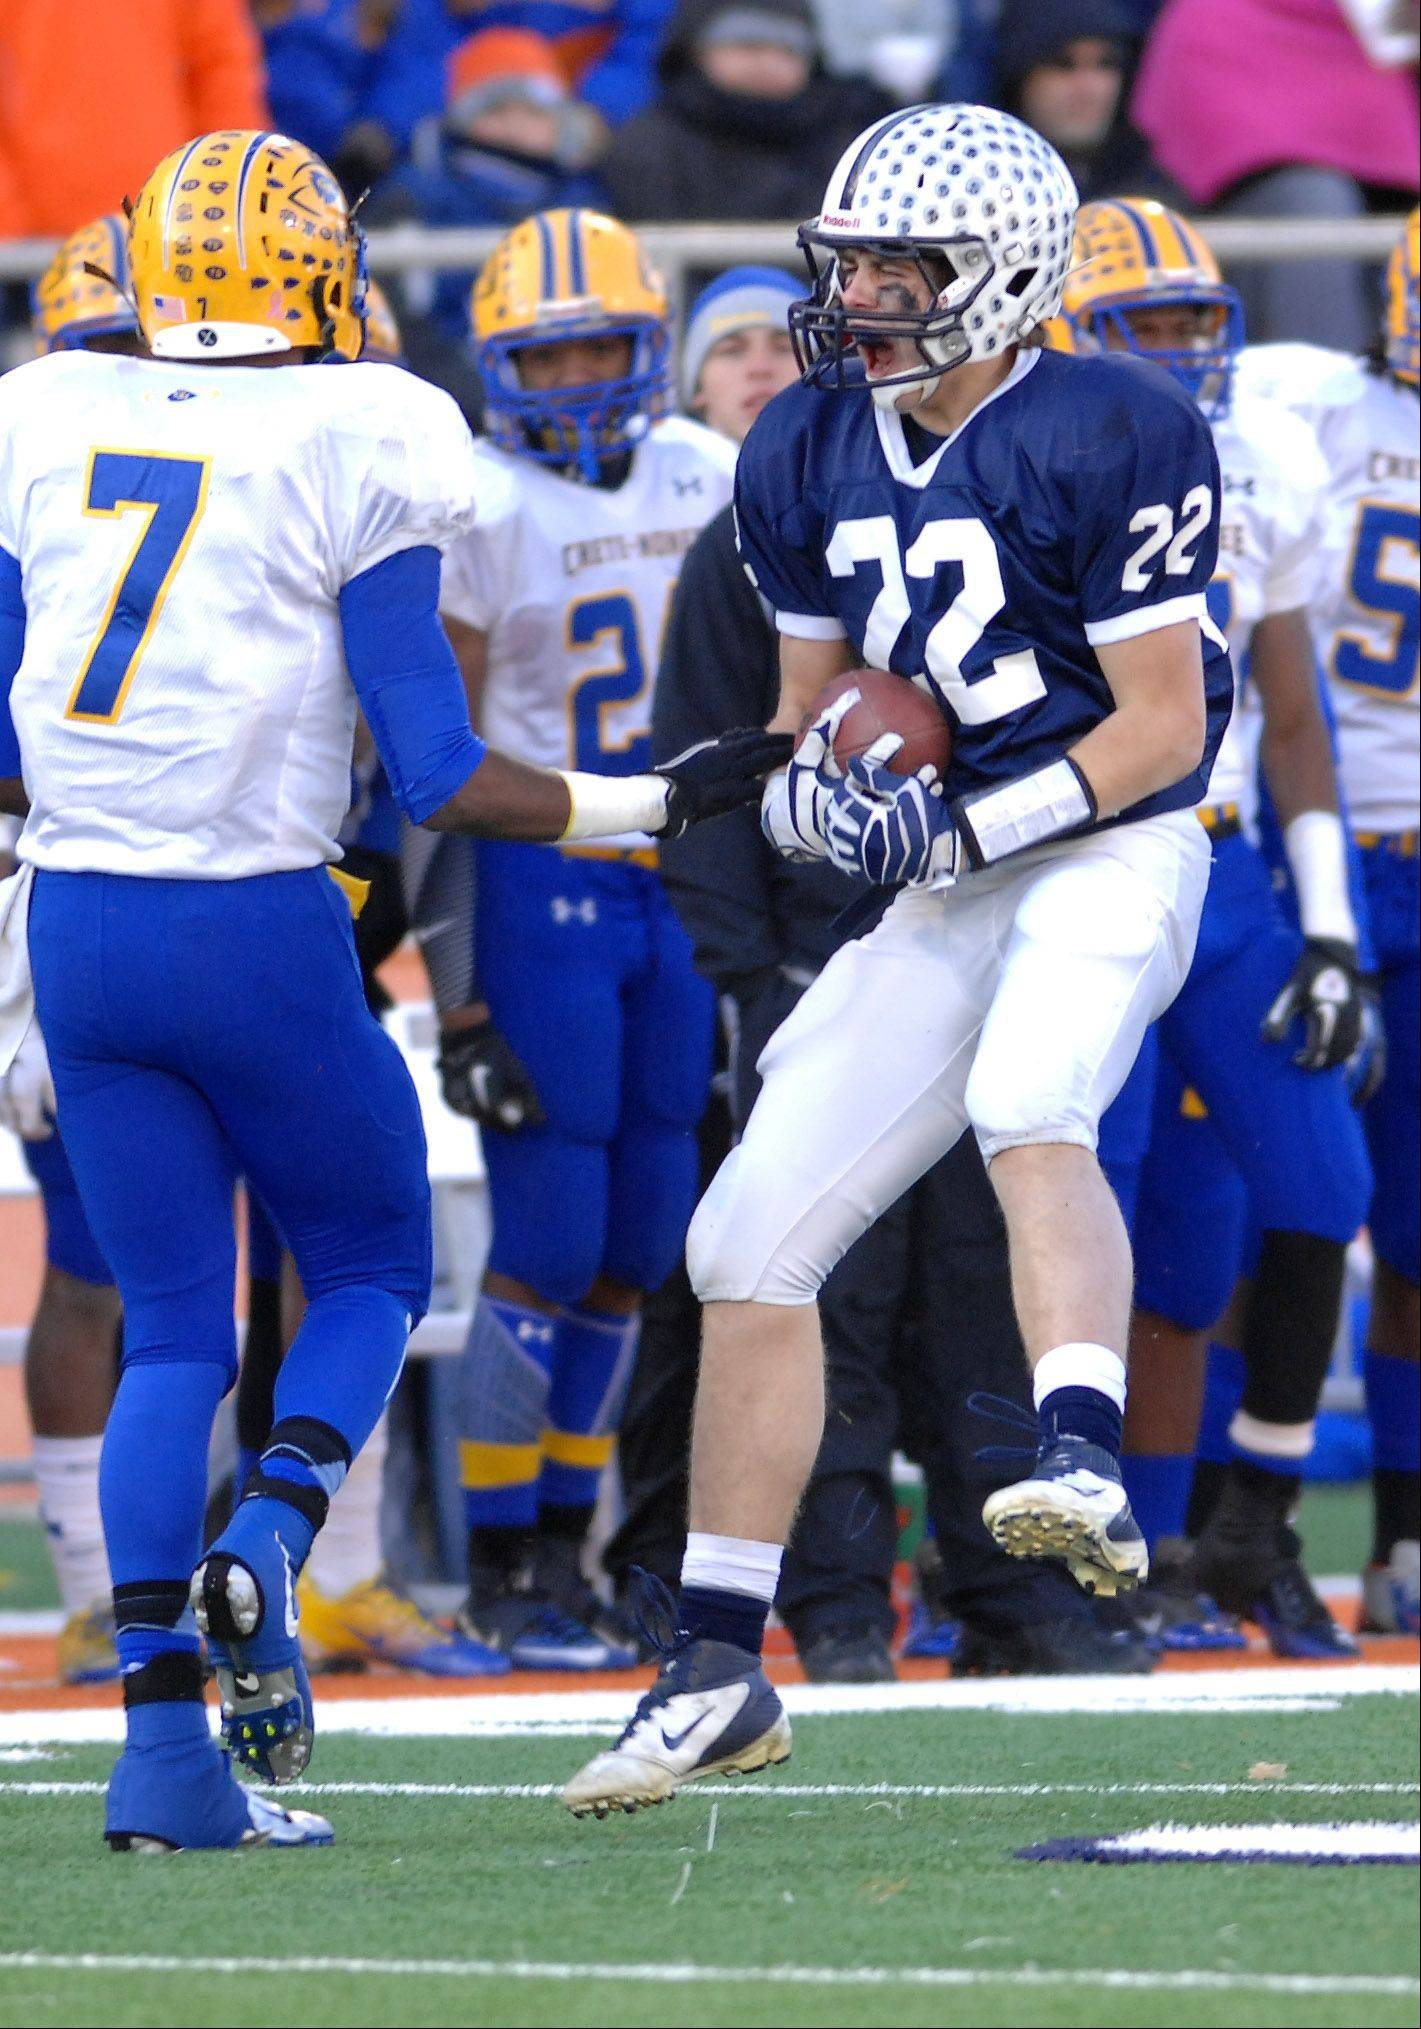 Cary-Grove�s Kasey Fields (22) celebrates an interception during Saturday�s Class 6A state title game at Memorial Stadium in Champaign.